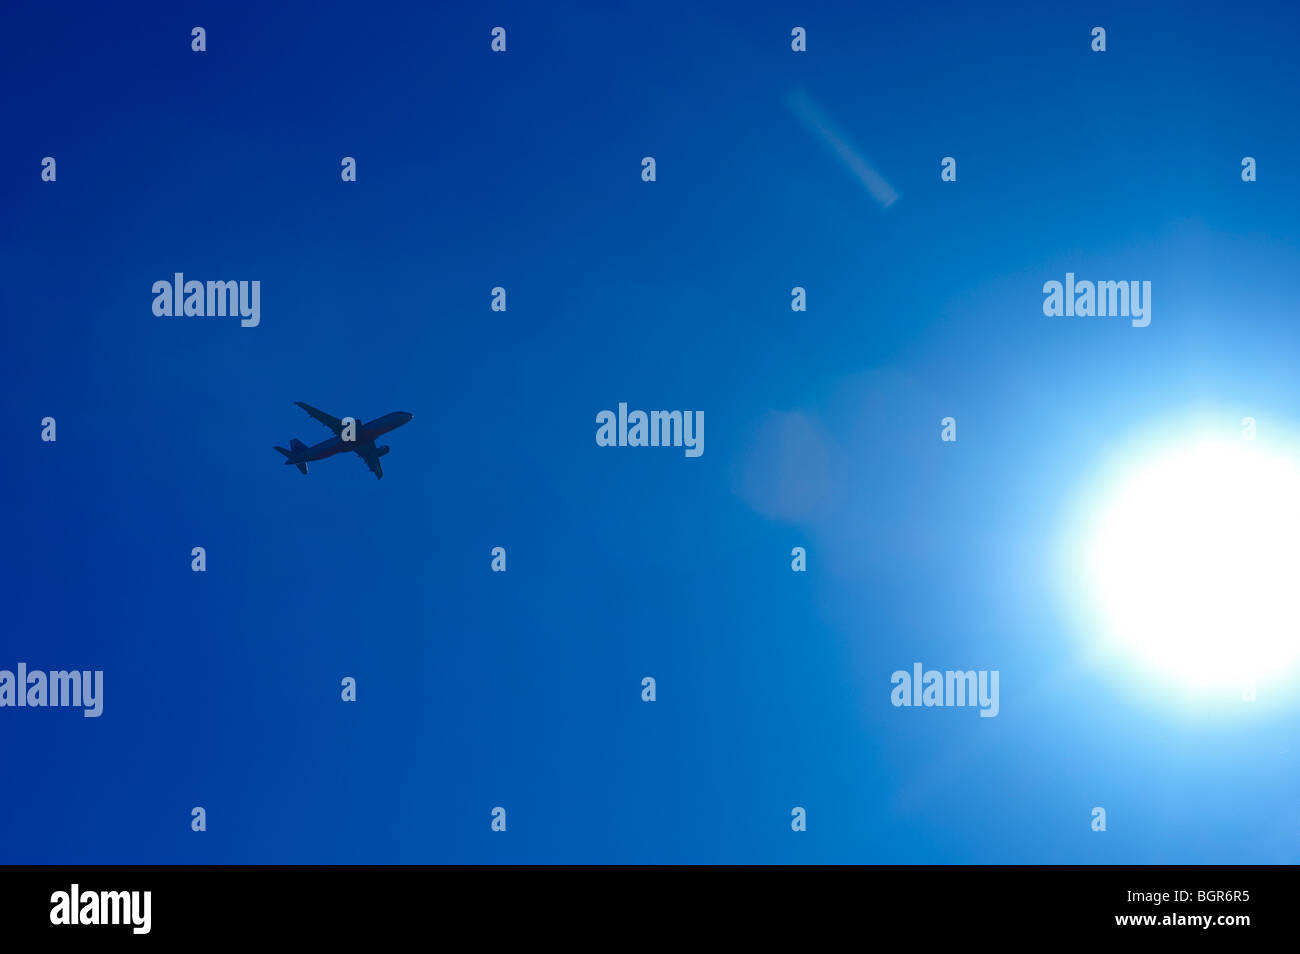 Avion de voler dans le soleil Photo Stock